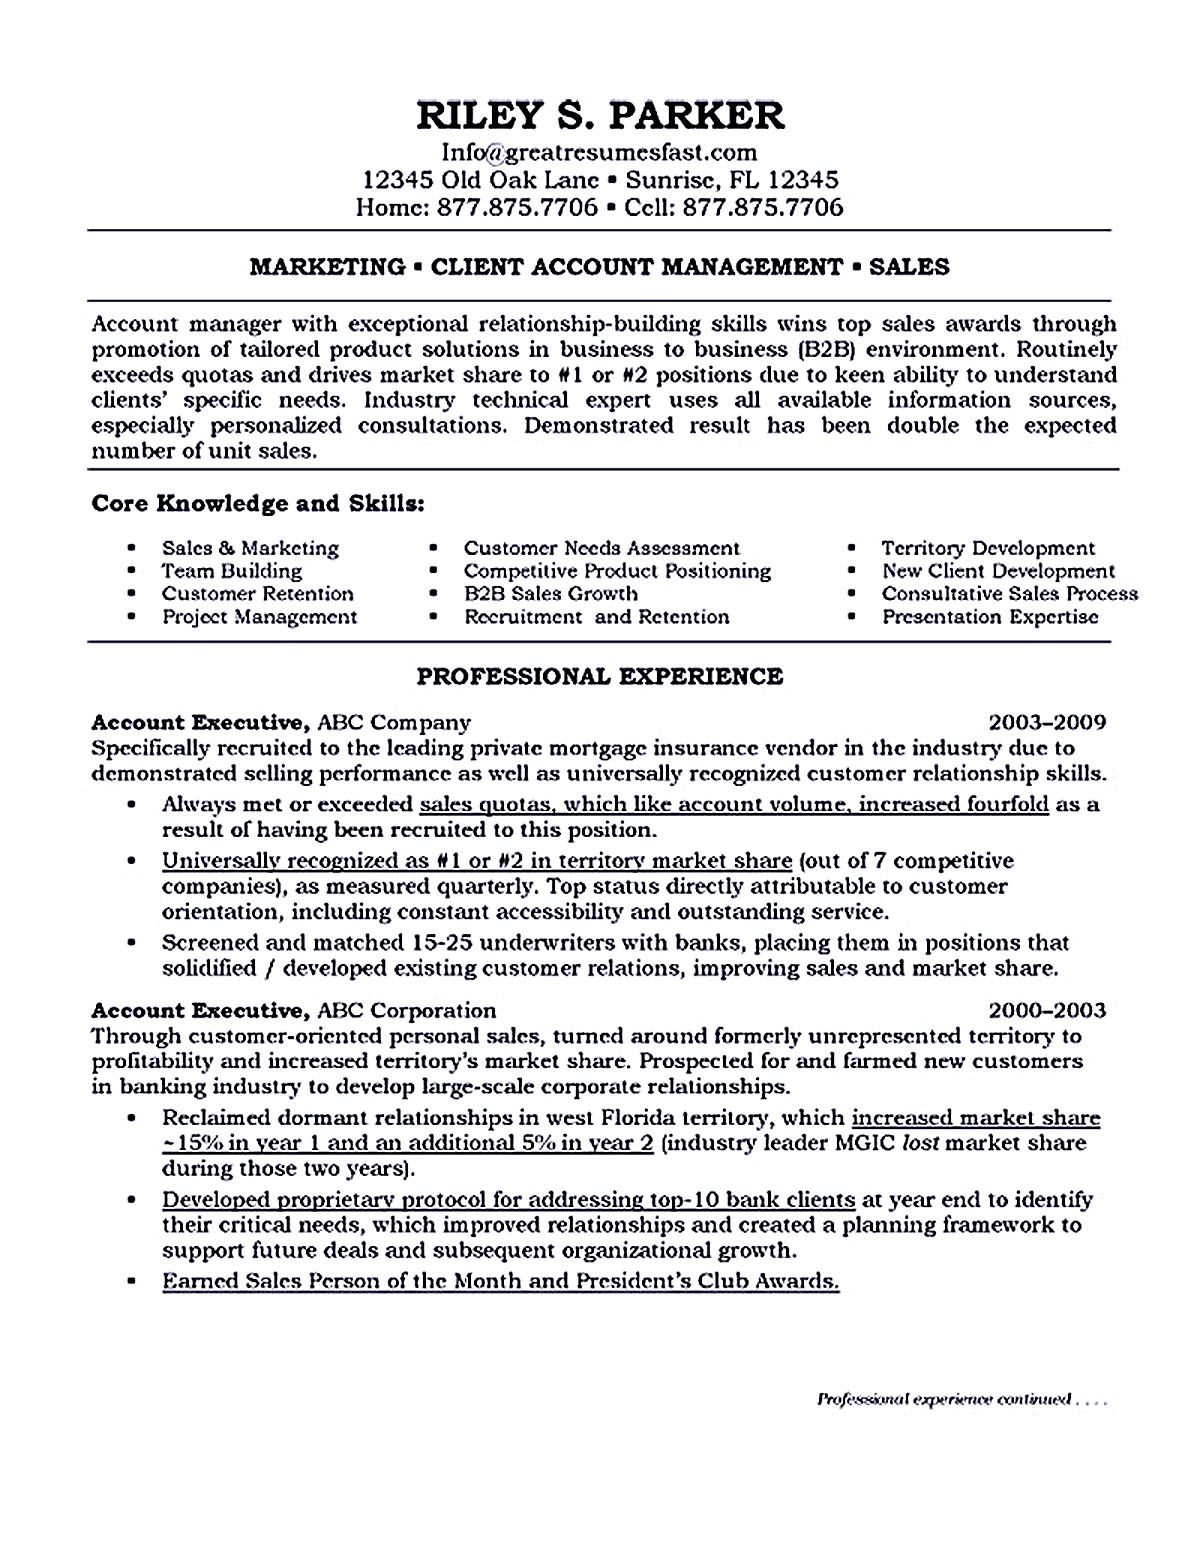 sample resume for marketing executive position, marketing manager ...